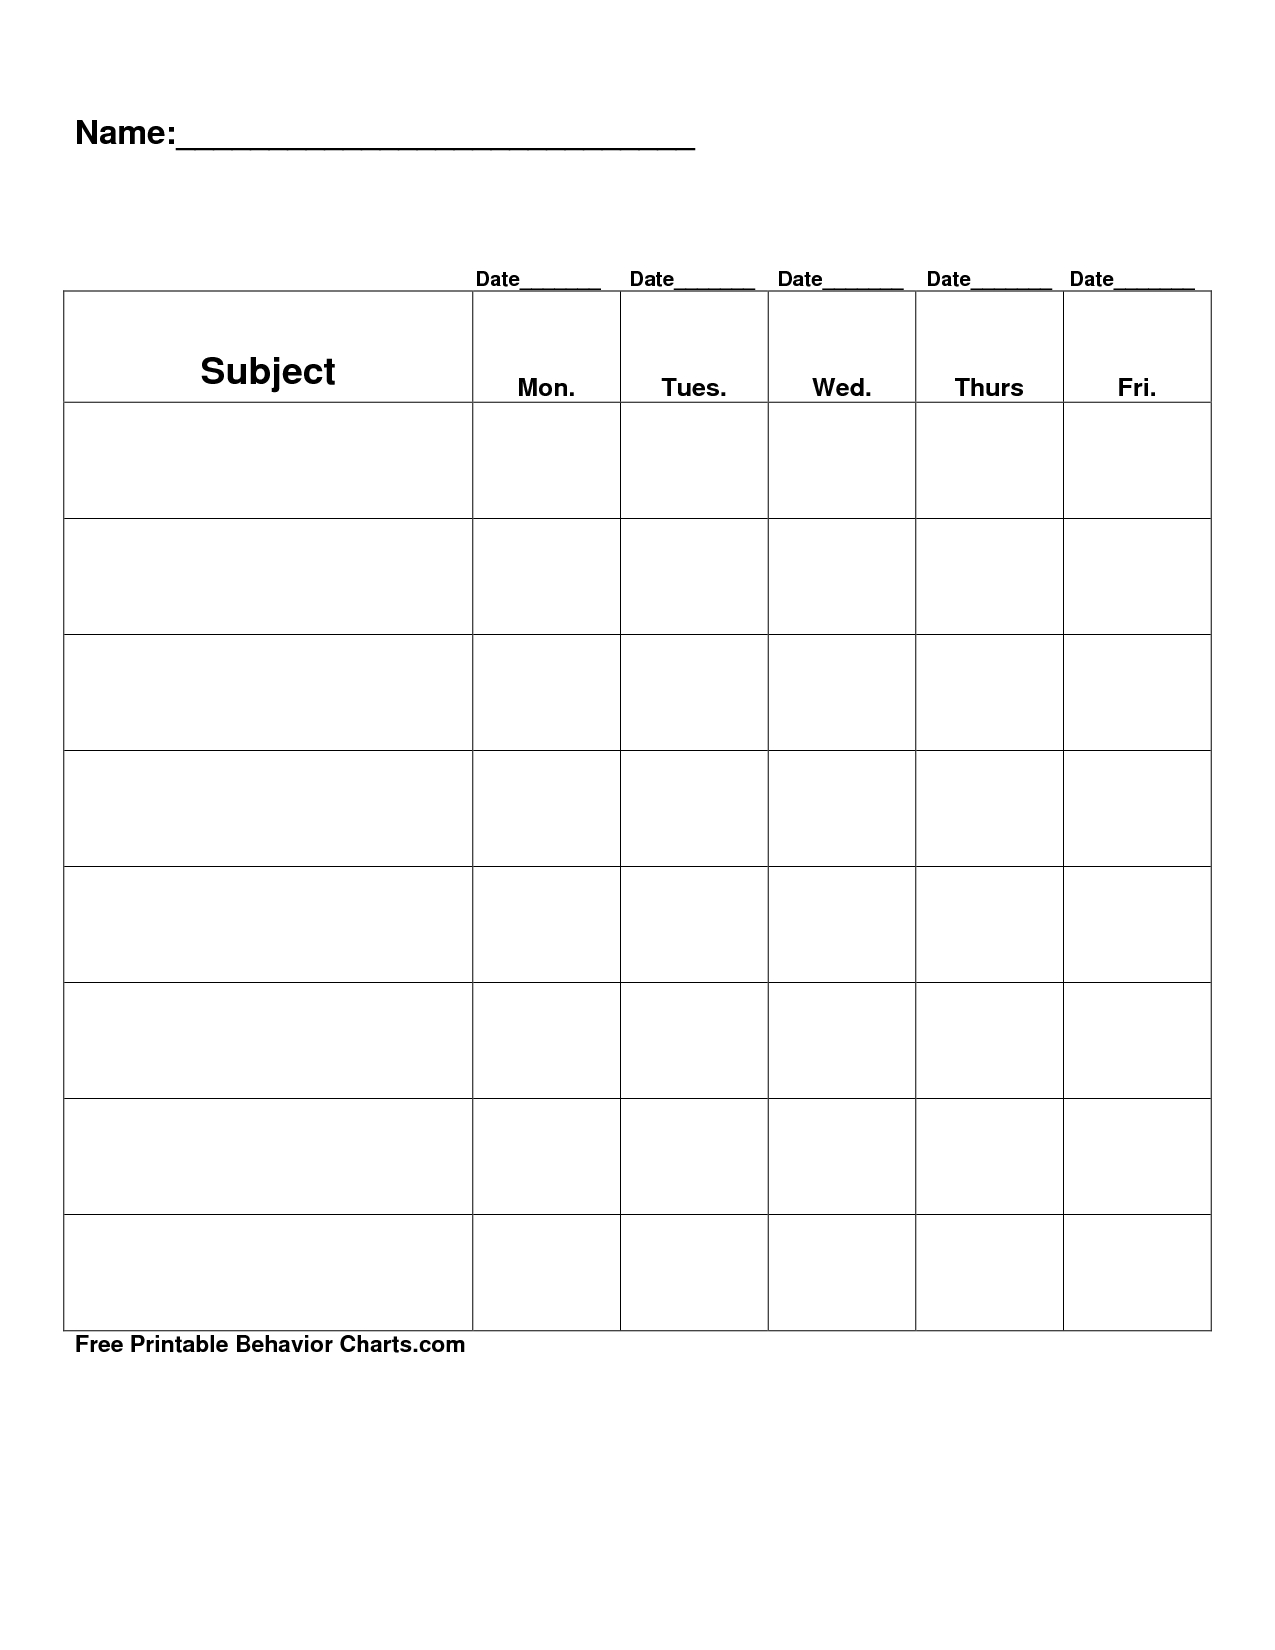 Free Printable Blank Charts | Free Printable Behavior Charts-Editable Monthly Behavior Chart